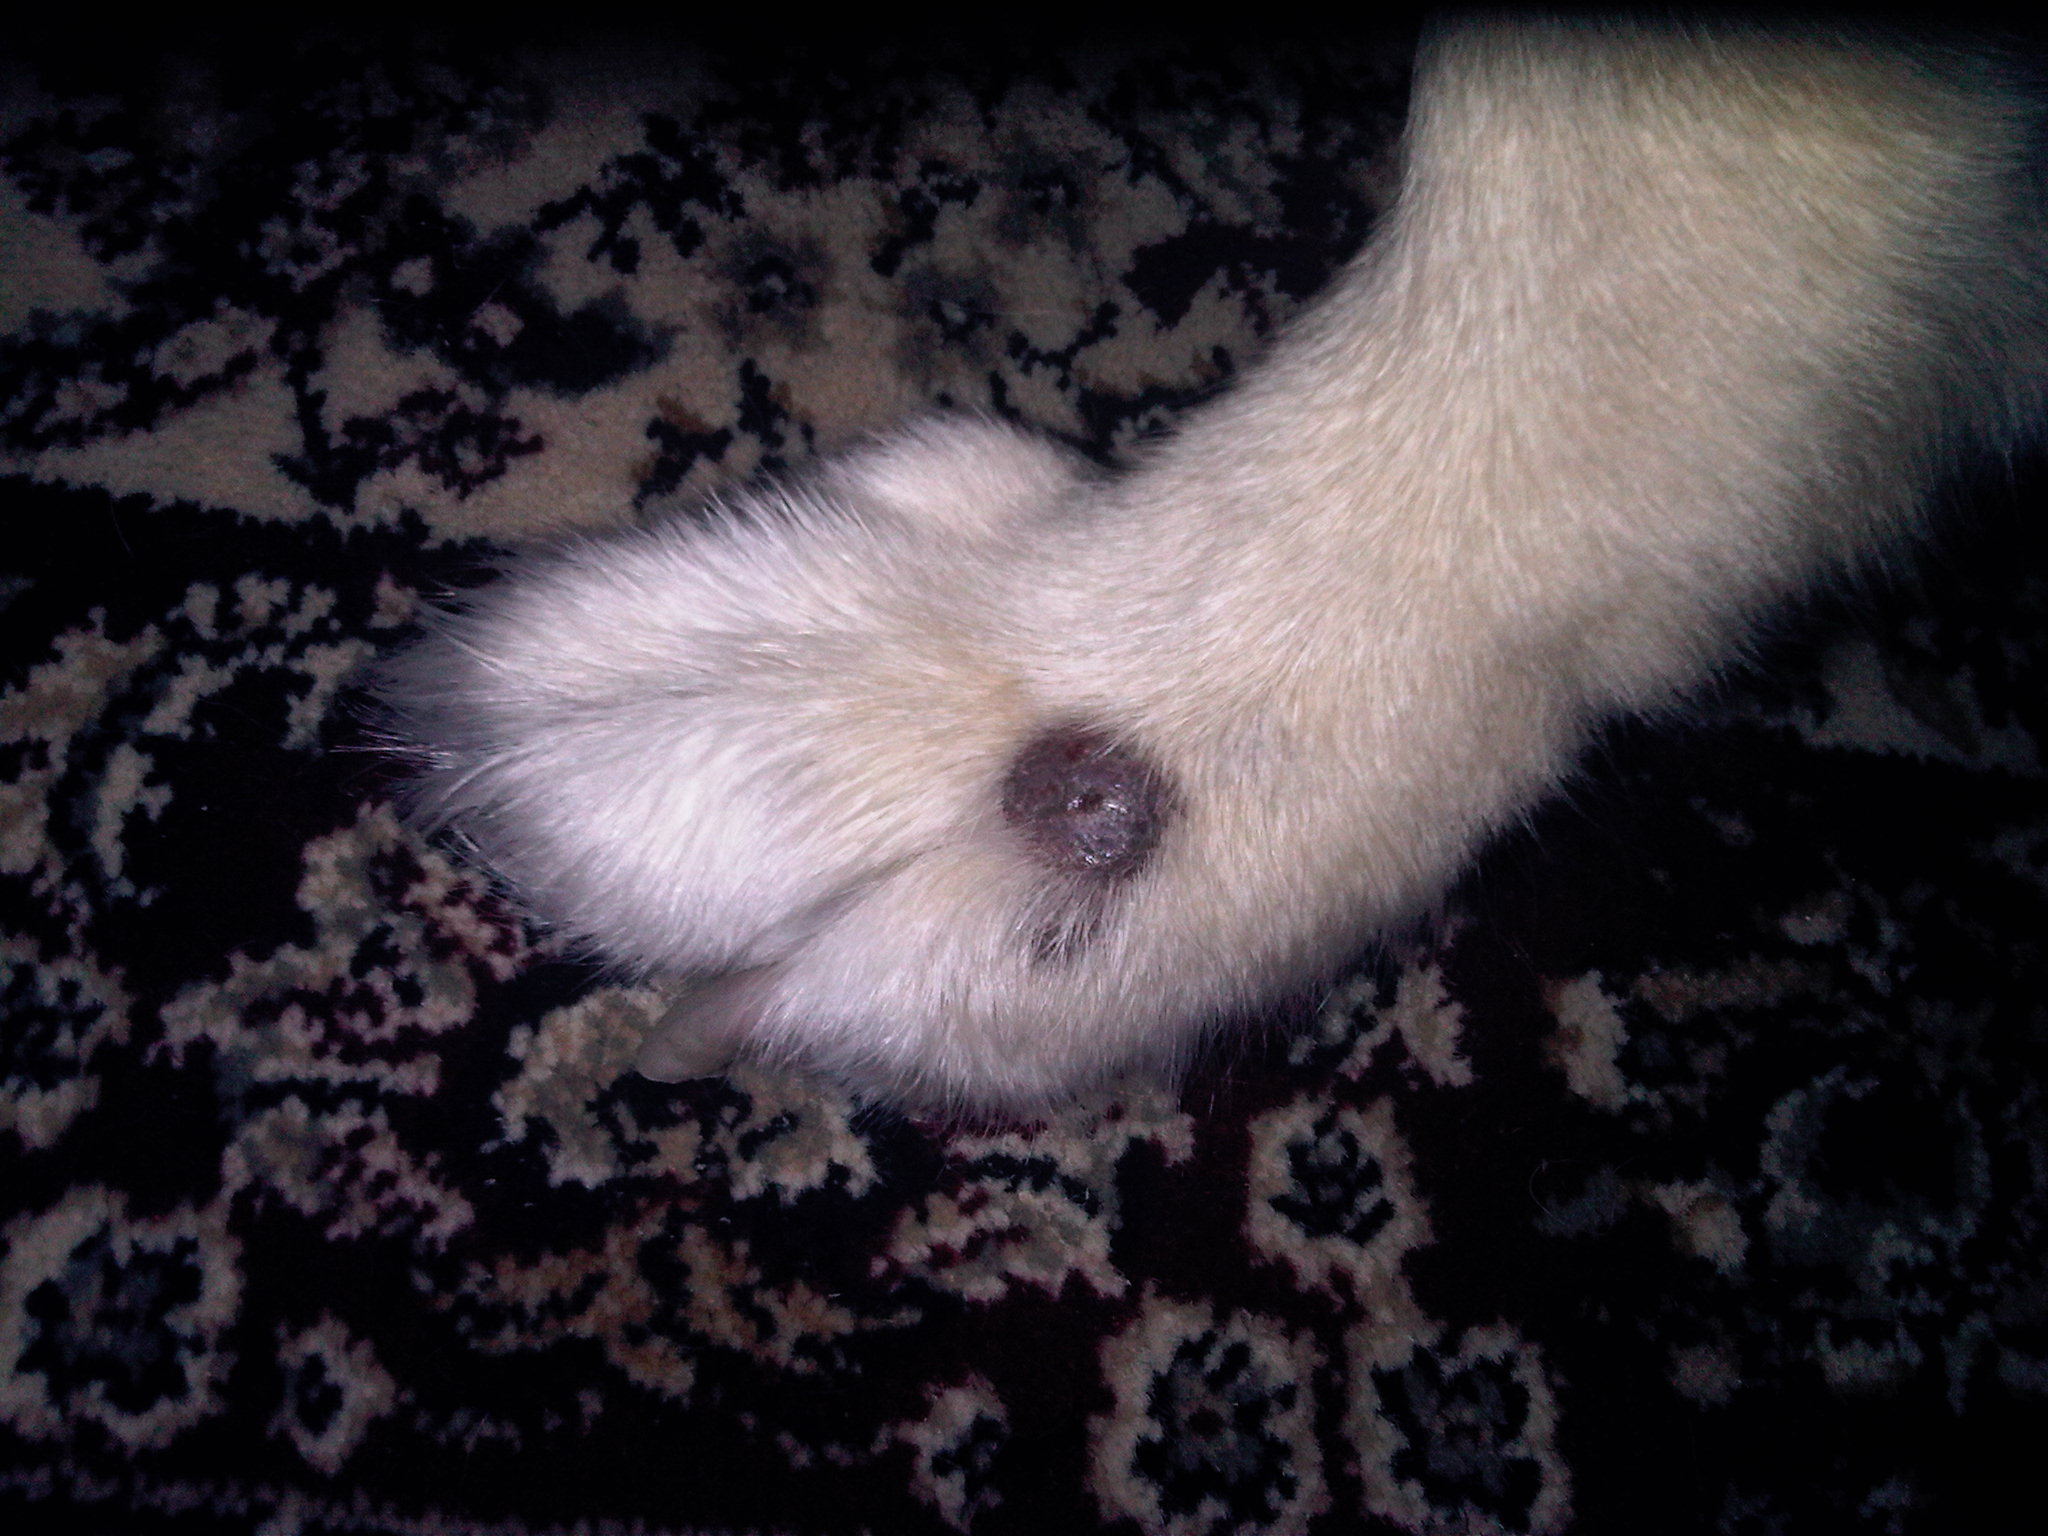 Dog Has Swollen Paw